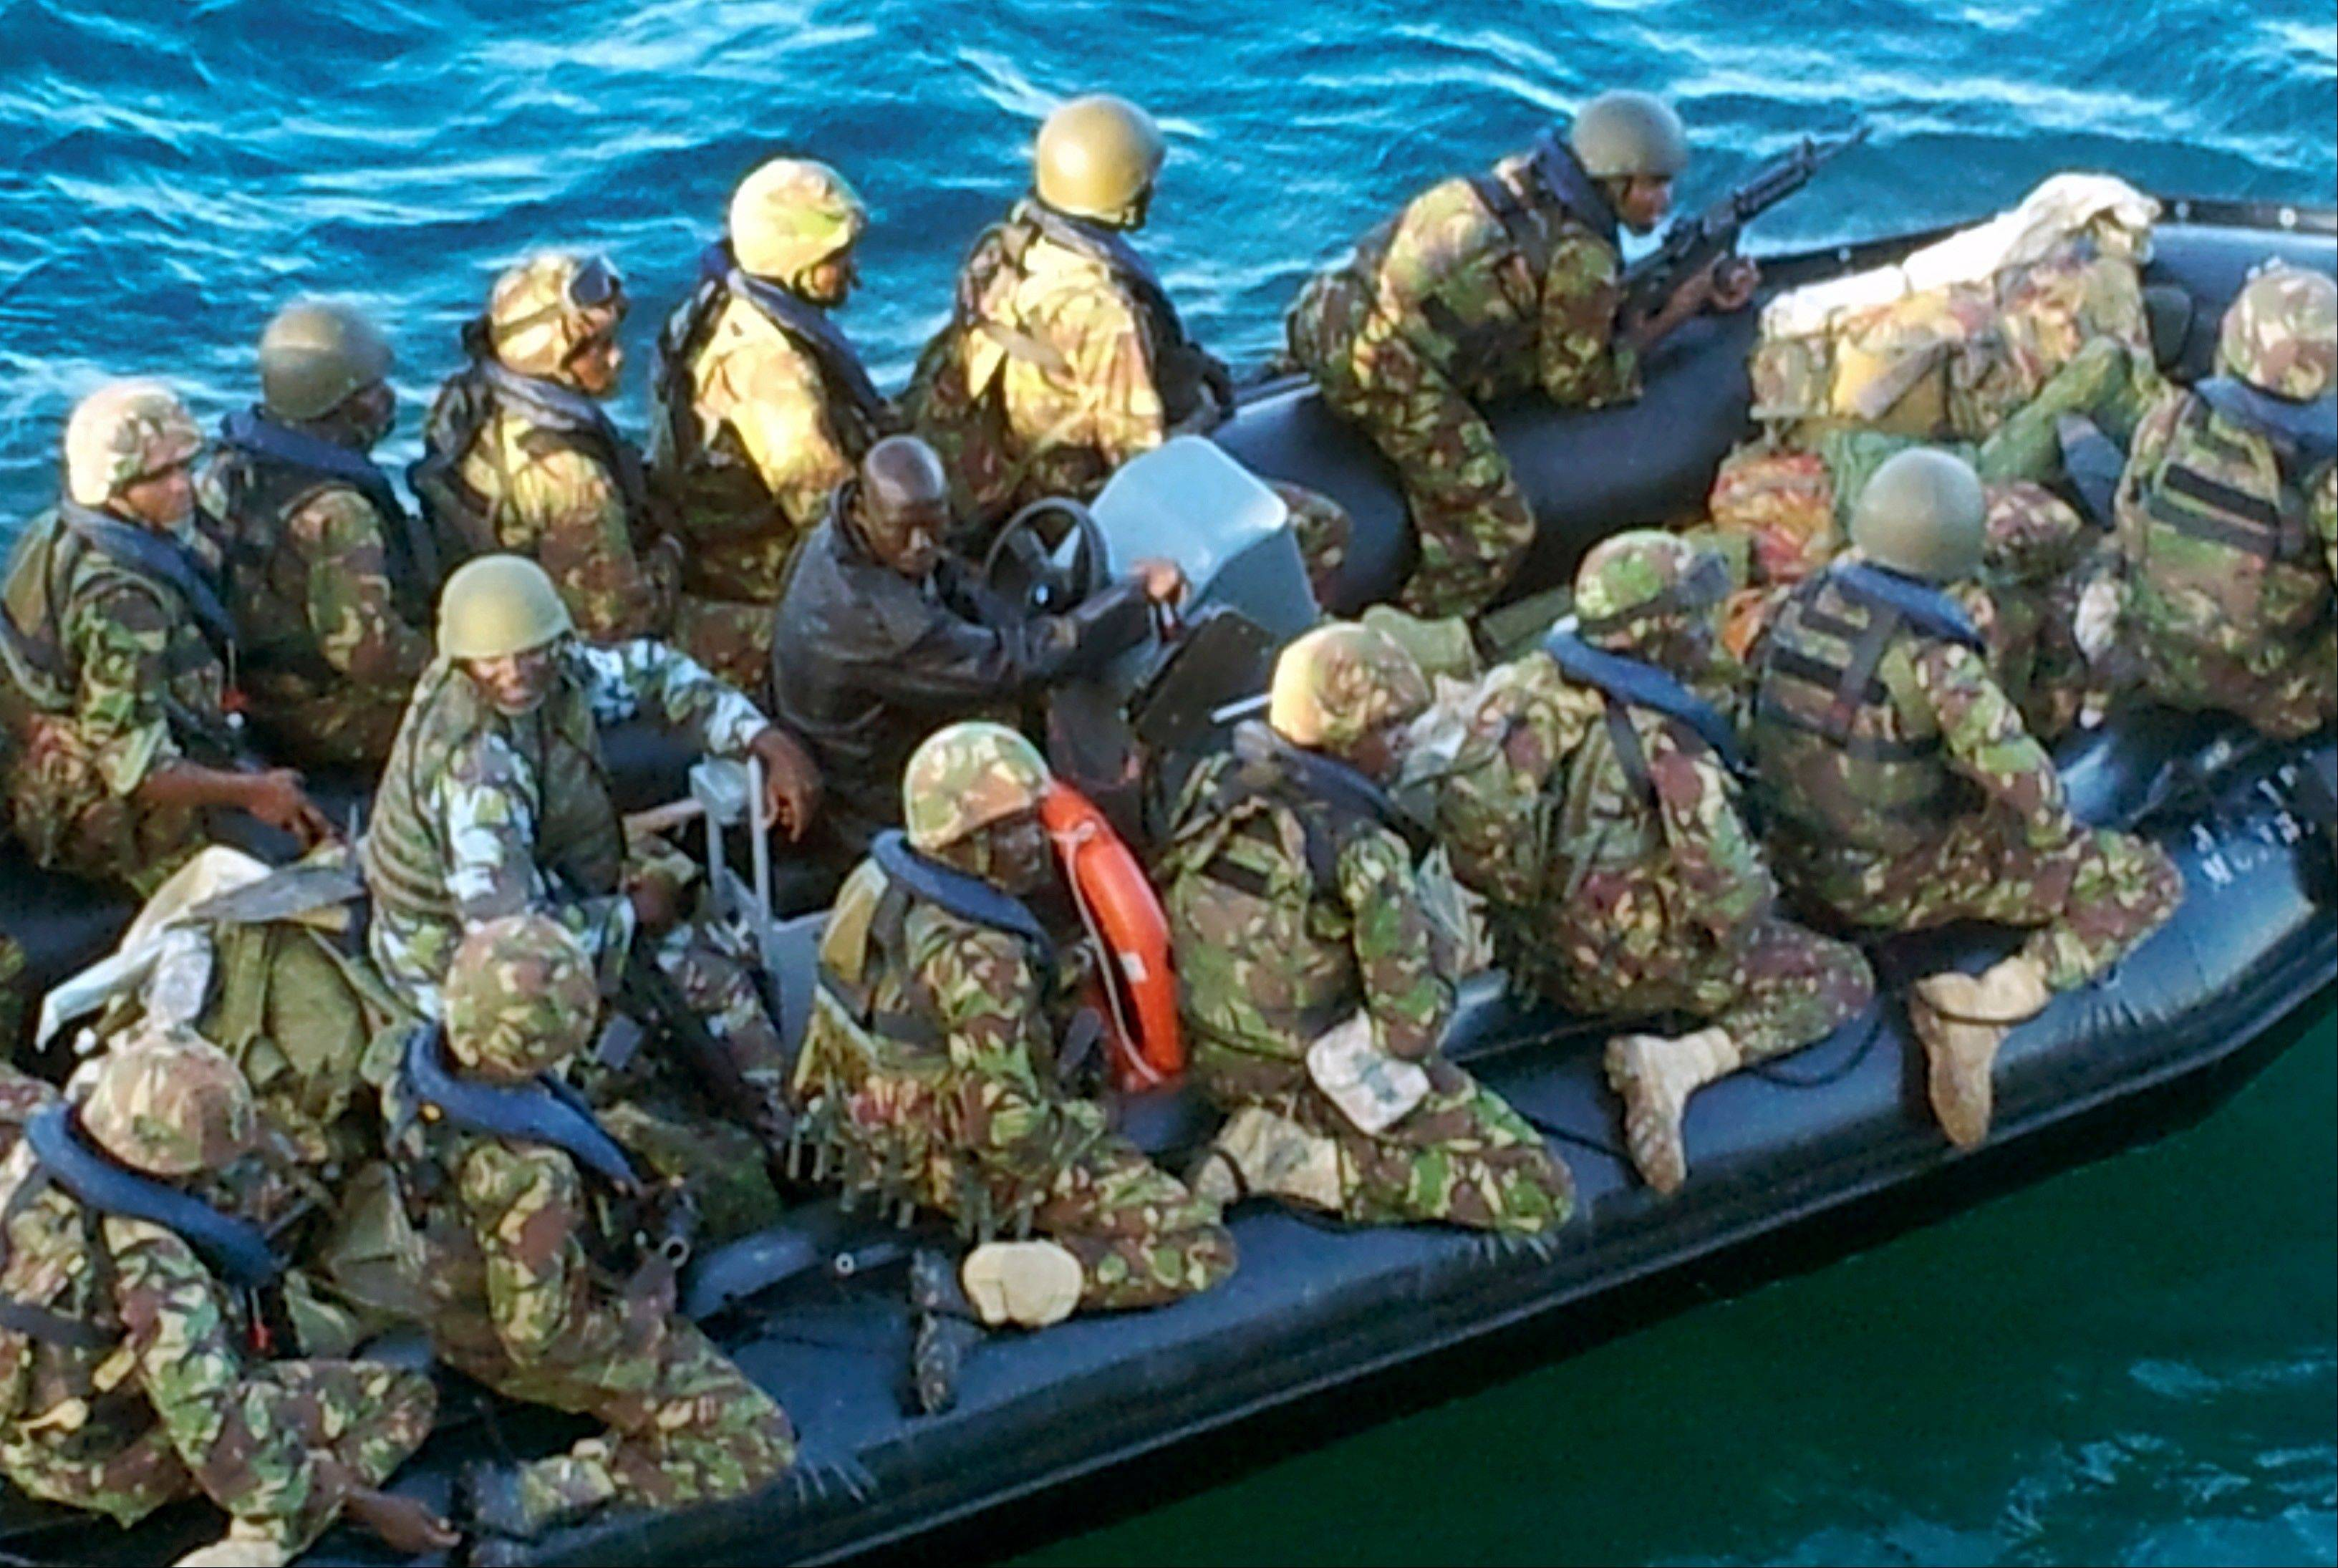 This undated photo provided by Kenya's Ministry for Defence on Friday,shows Kenya Defence Forces troops at an undisclosed location in Kenya, engaged in recent preparations for an assault on the Somali port city of Kismayo.